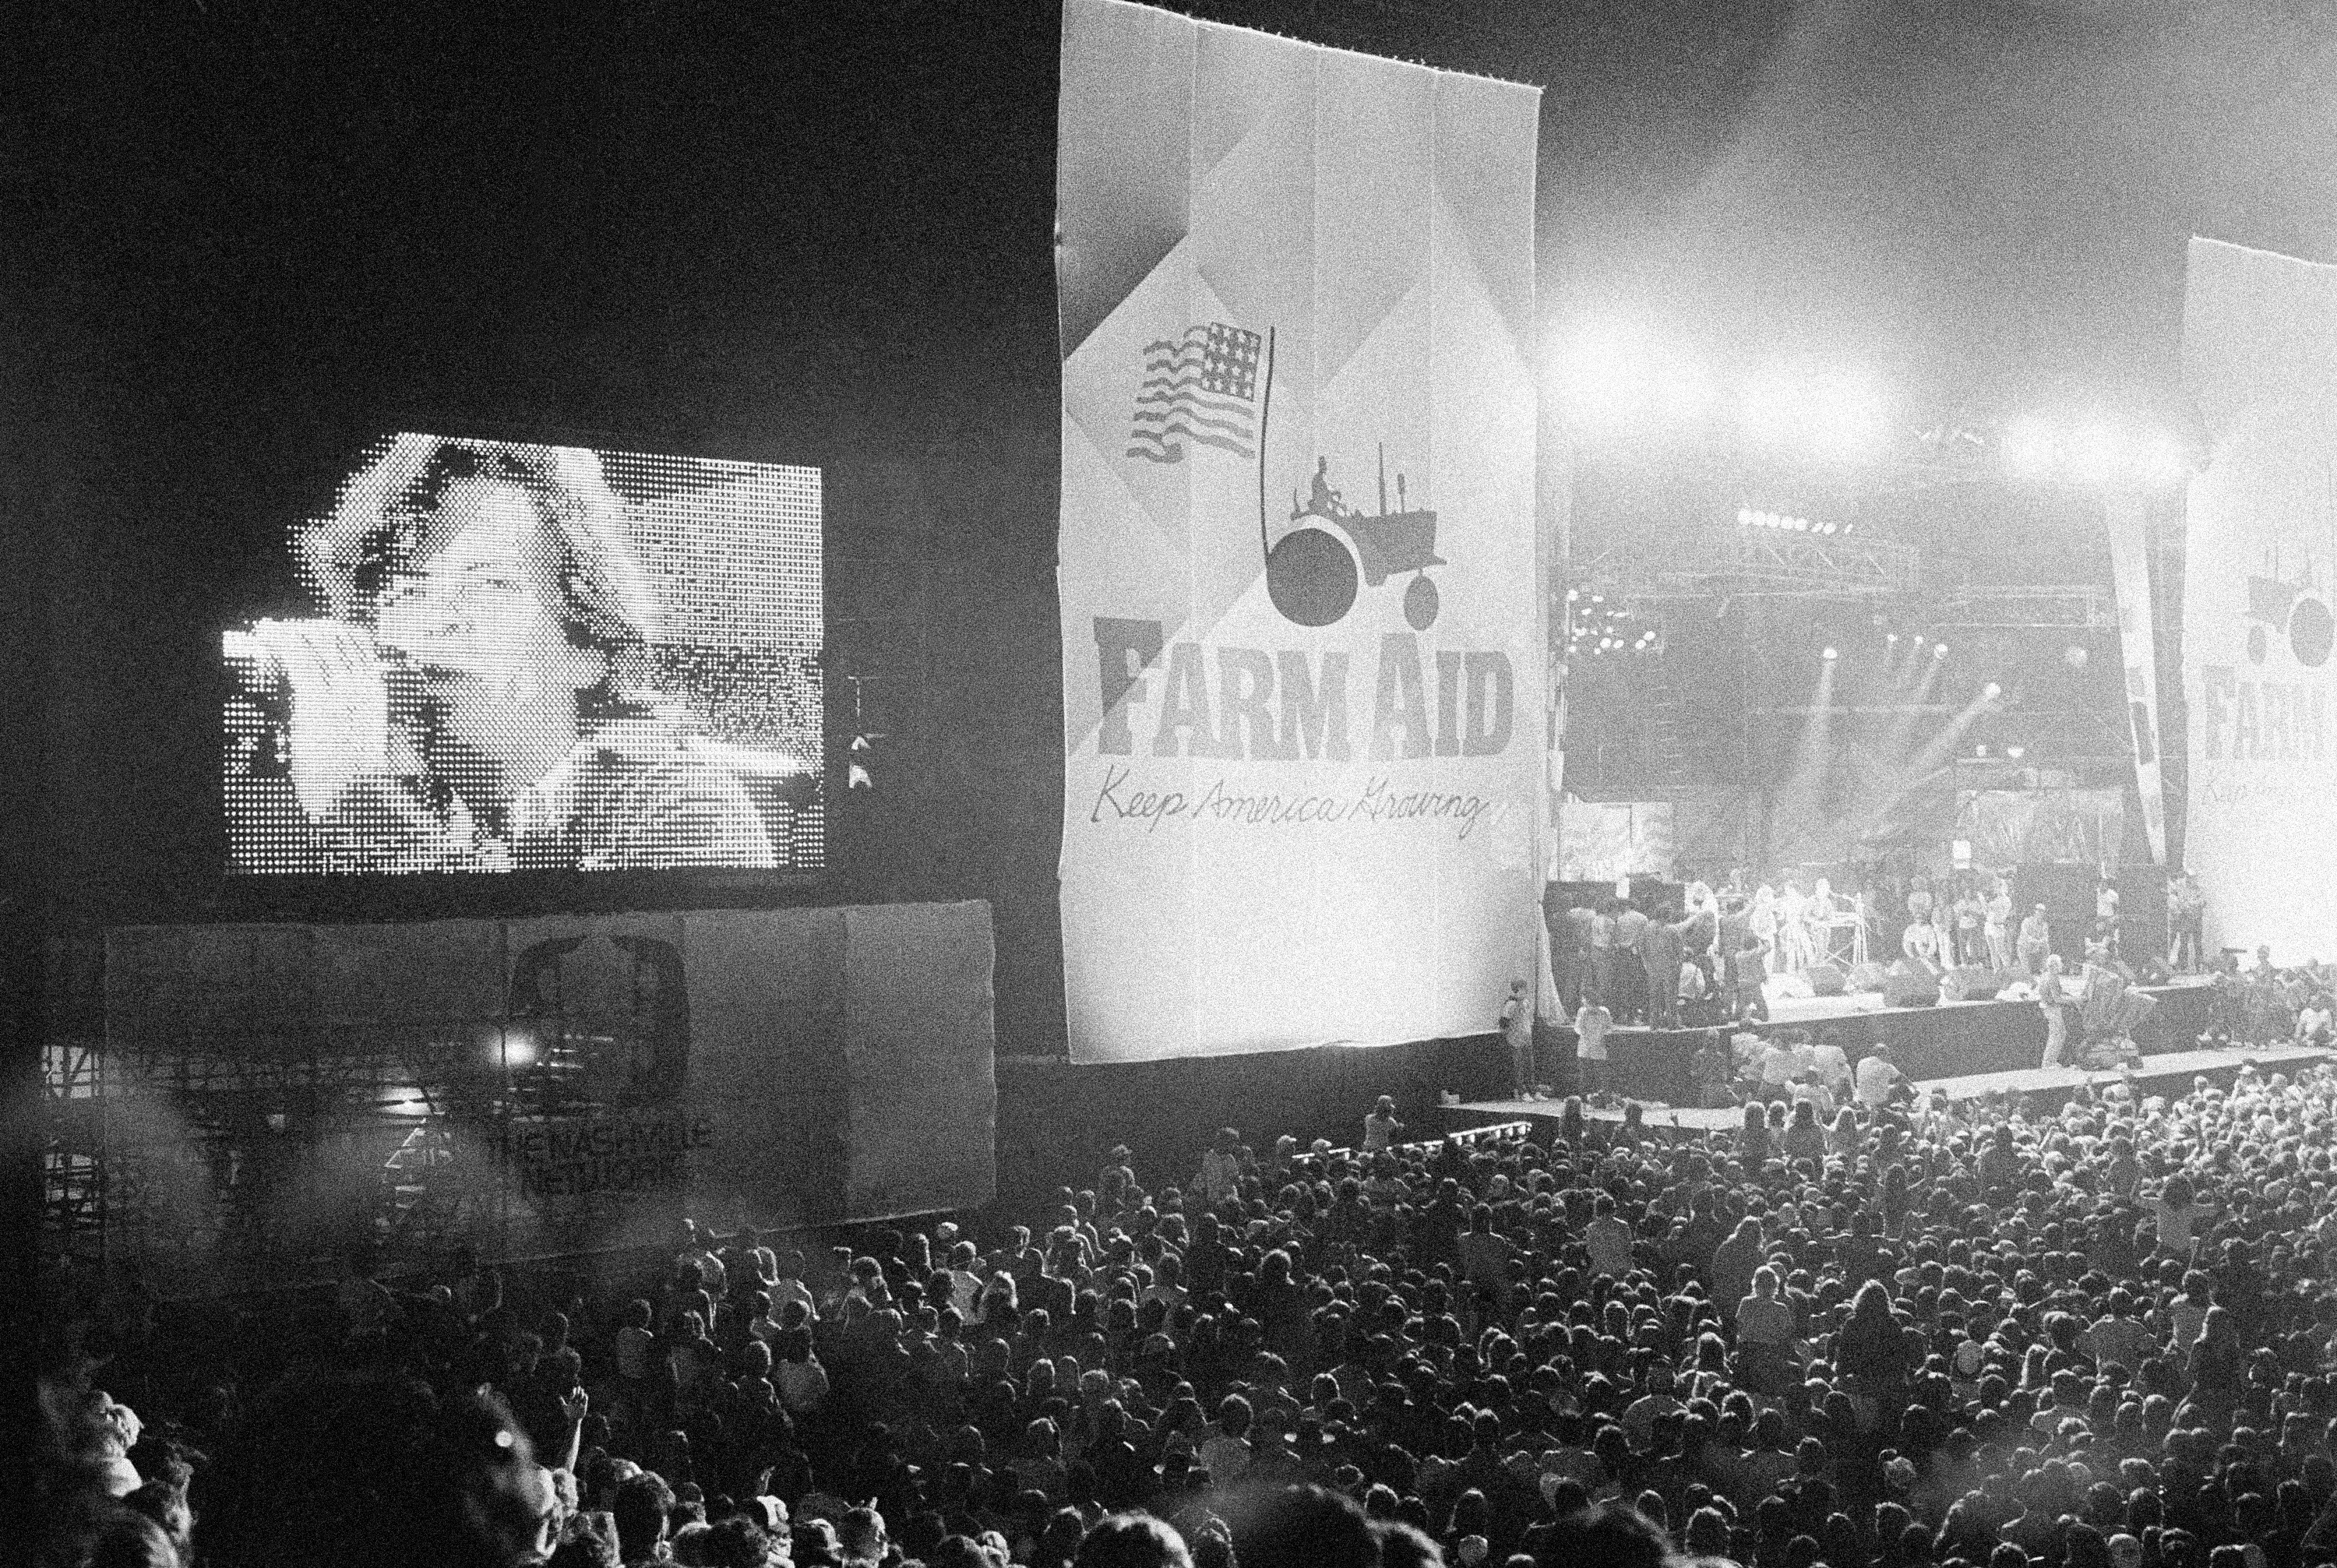 John Cougar Mellencamp performs at Farm Aid